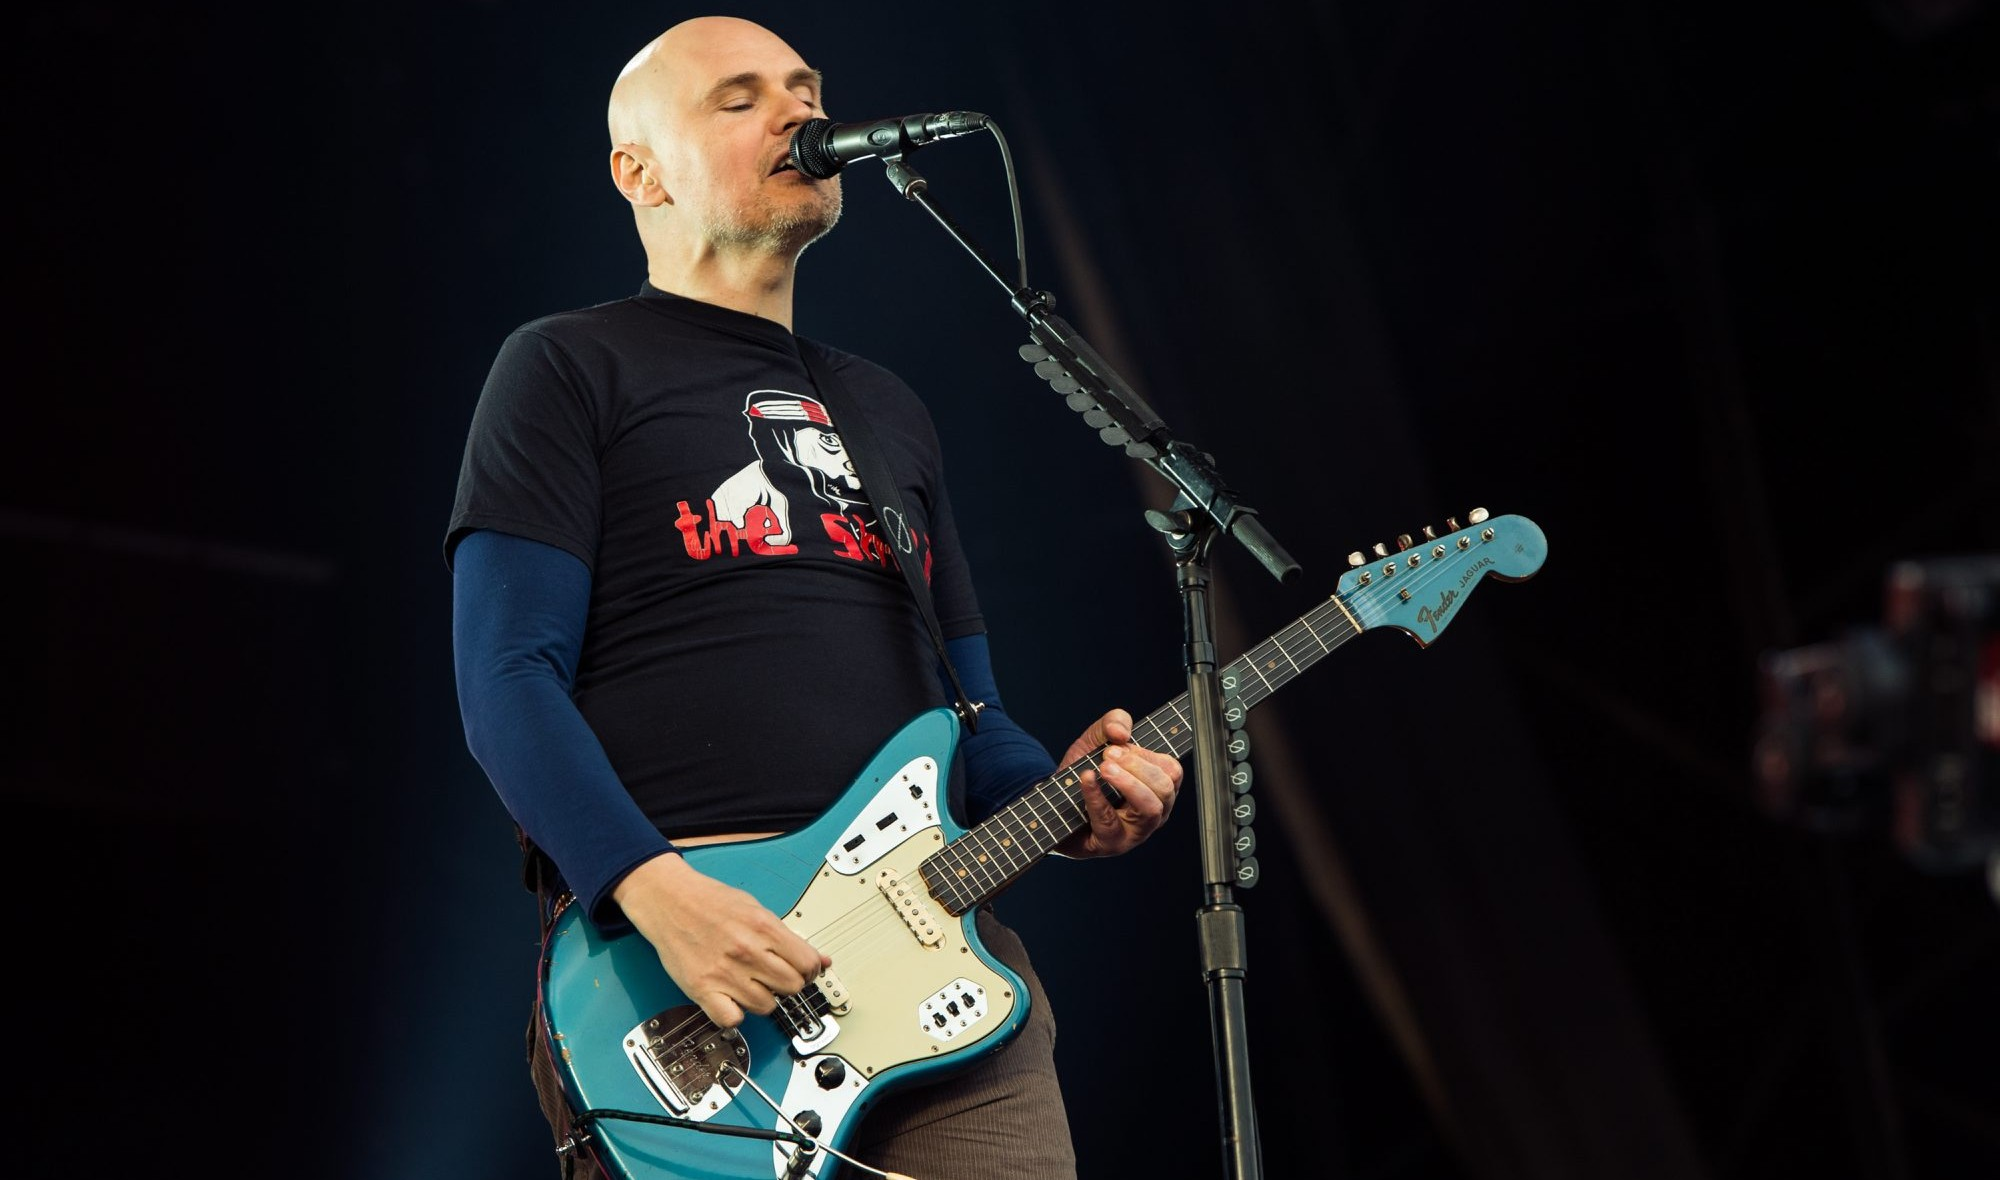 Billy Corgan and the Smashing Pumpkins will play an acoustic show in the Riviera Theatre. (Getty Images)